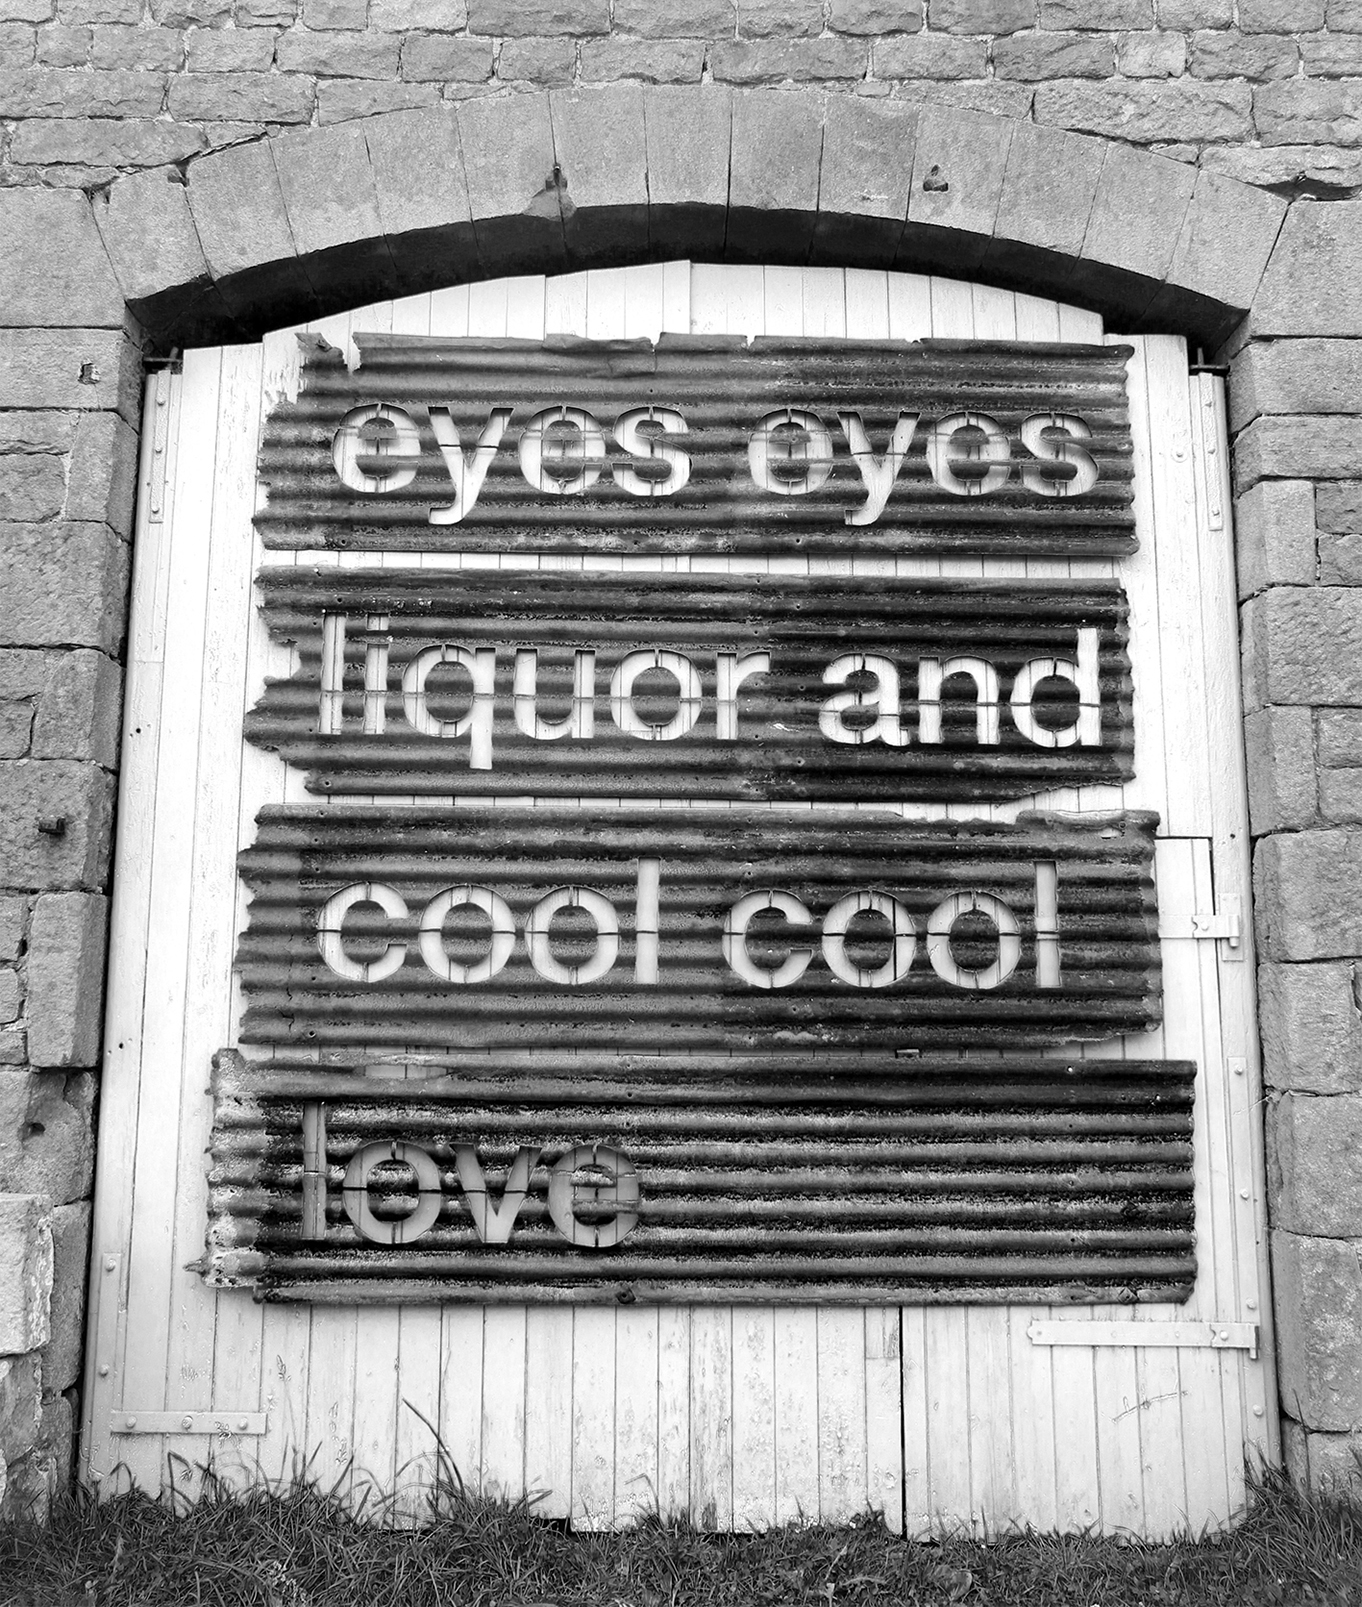 Untitled (Eyes Eyes Liquor and Cool Cool Love)  Corrugated Iron  260 x 269 x 10 cm  2015